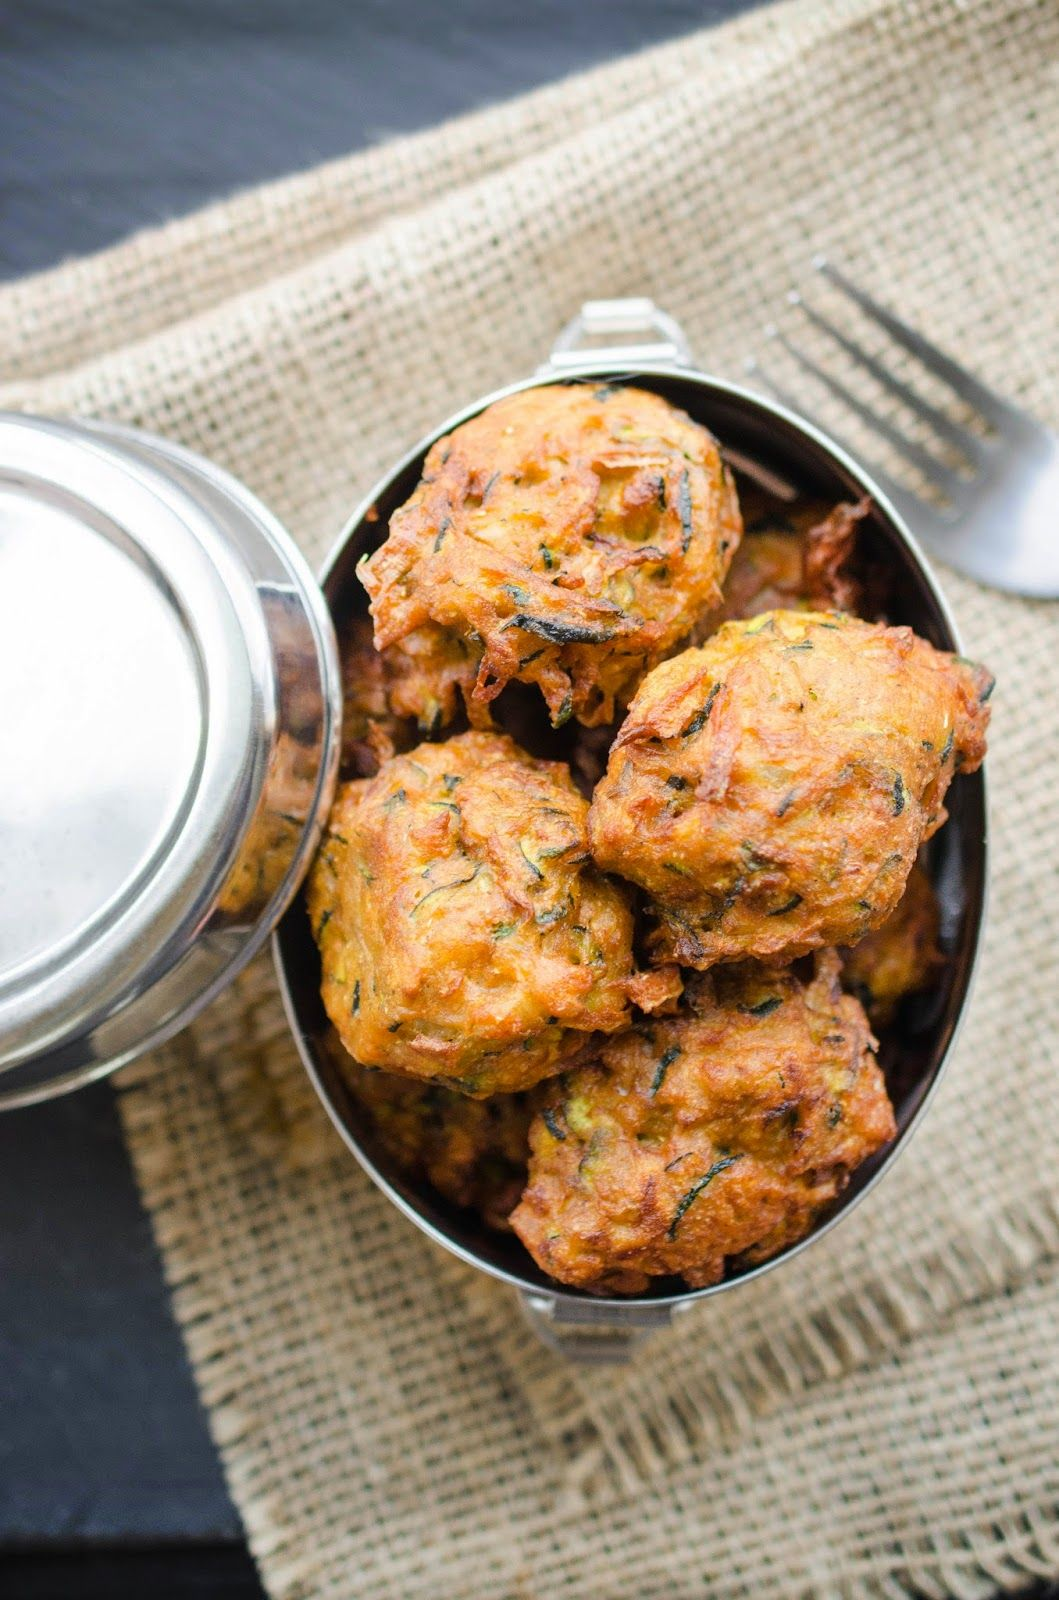 Zucchini and onion bhajis indian spiced zucchini and onion fritters zucchini and onion bhajis indian spiced zucchini and onion fritters or pakoras the forumfinder Choice Image